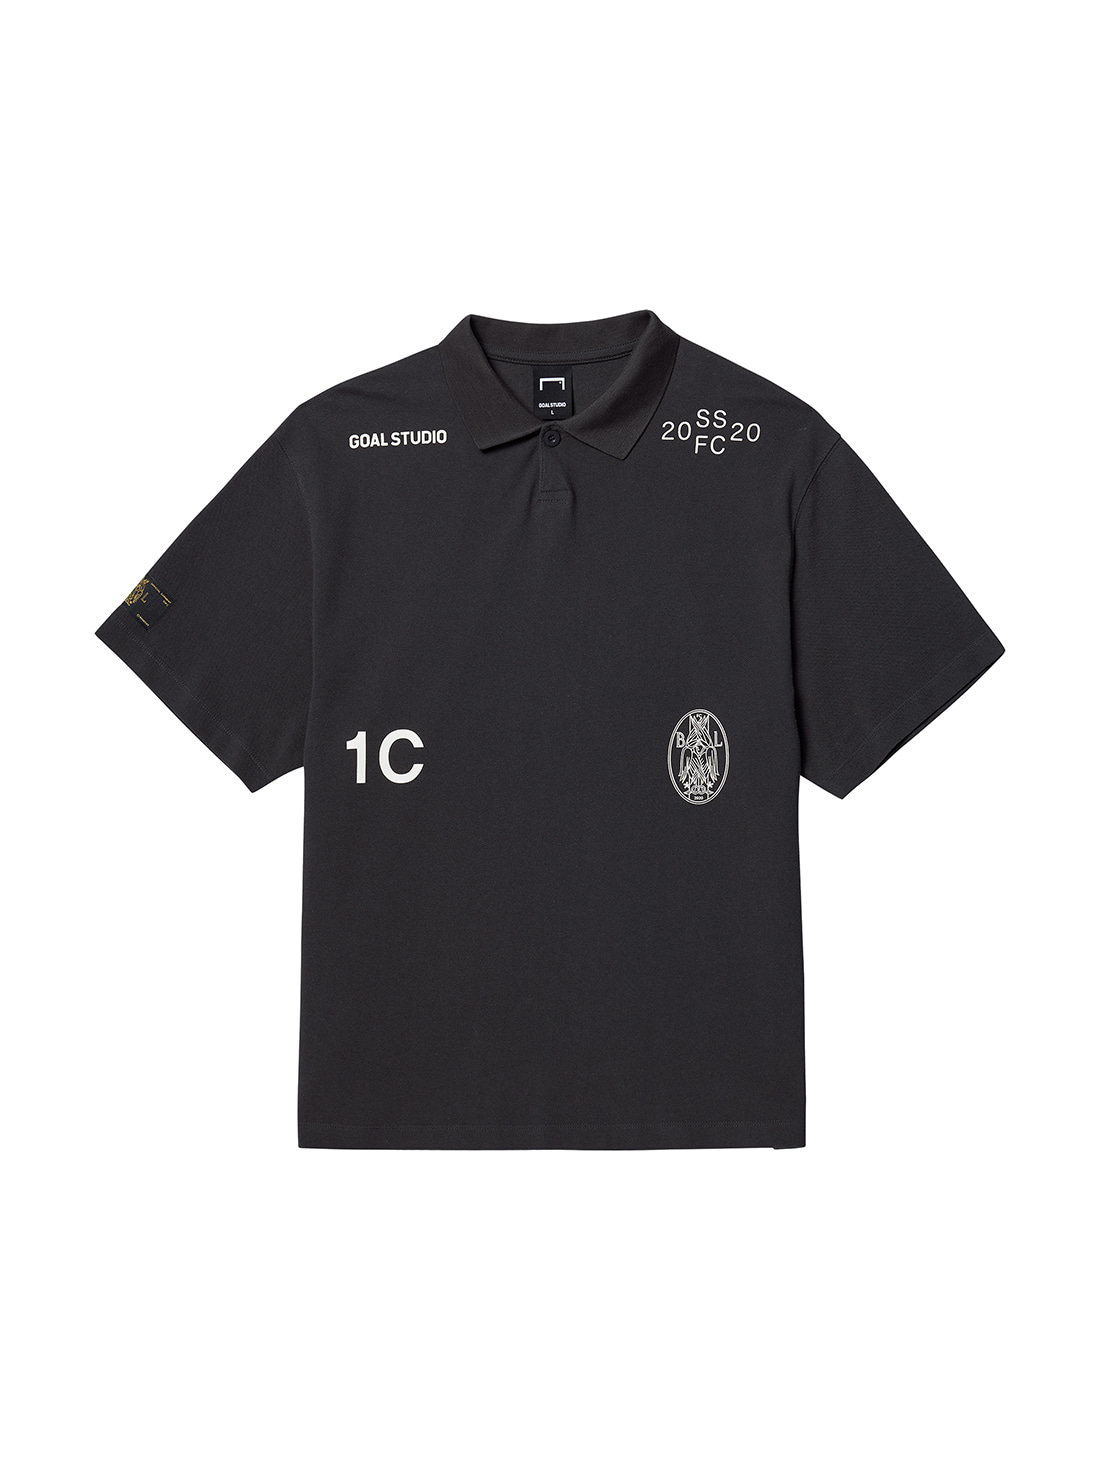 GOALSTUDIO SSFC PIQUE COLLAR SHIRT - CHARCOAL